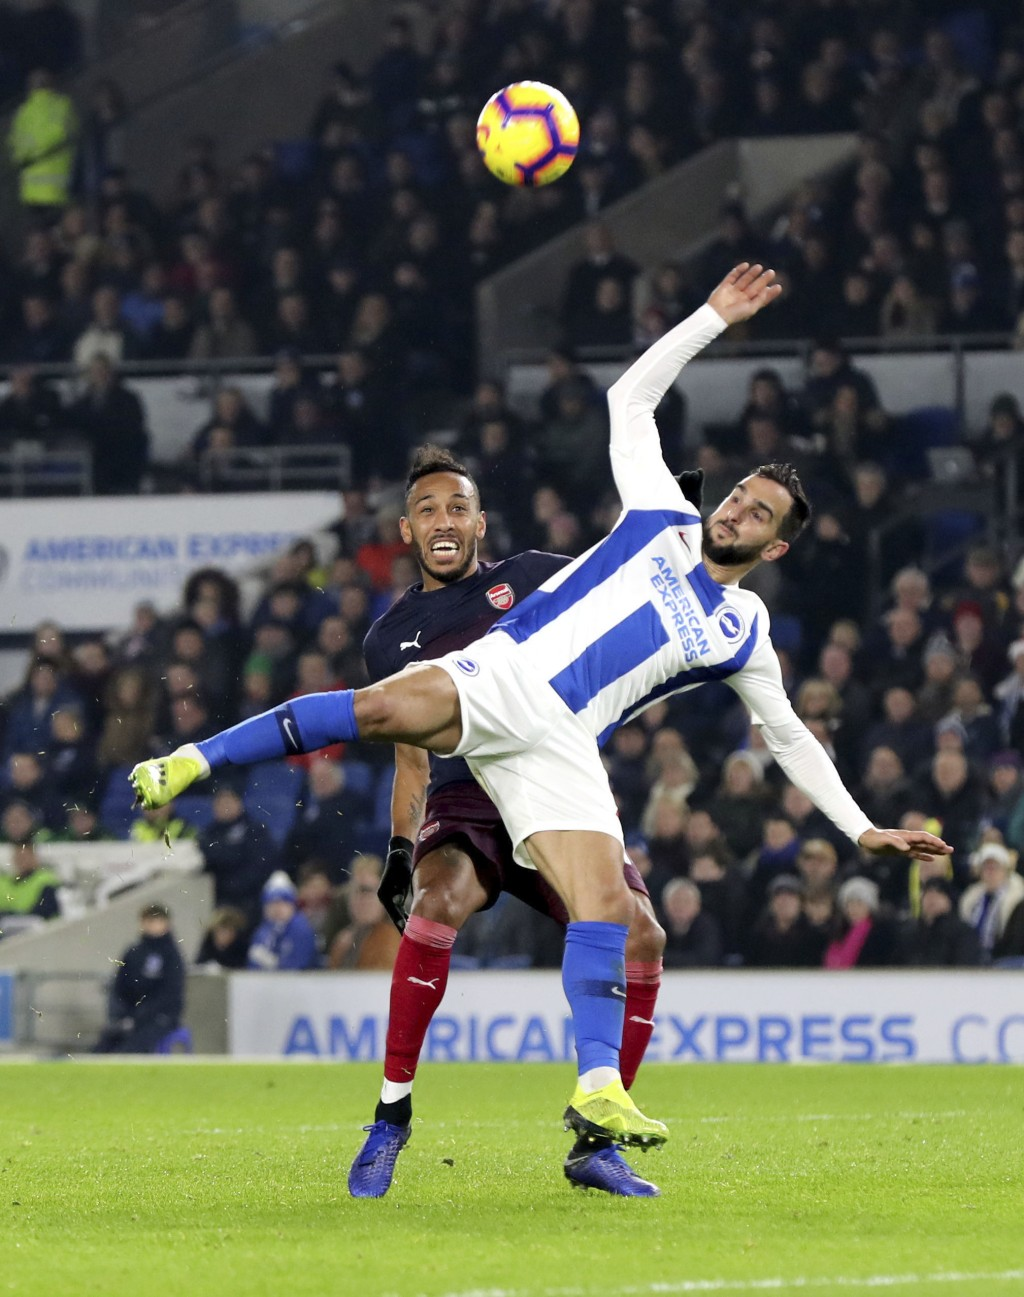 Arsenal's Pierre-Emerick Aubameyang, rear, and Brighton & Hove Albion's Martin Montoya battle for the ball during the English Premier League soccer ma